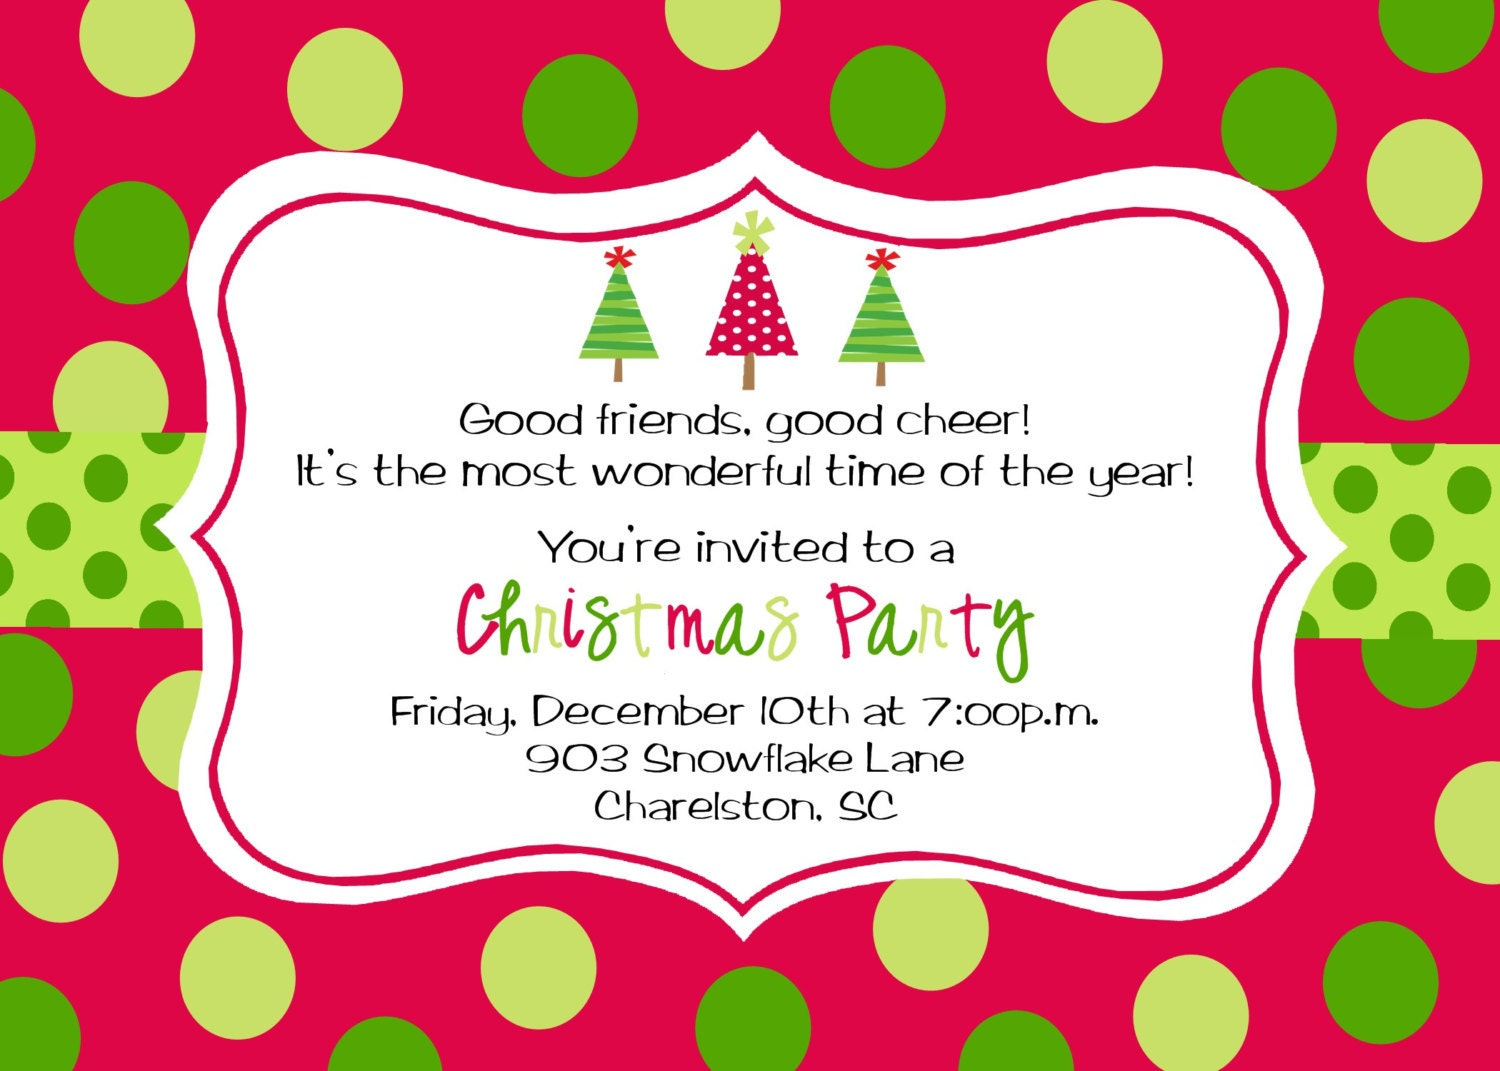 Christmas Party Invitations Wording Christmas invitation